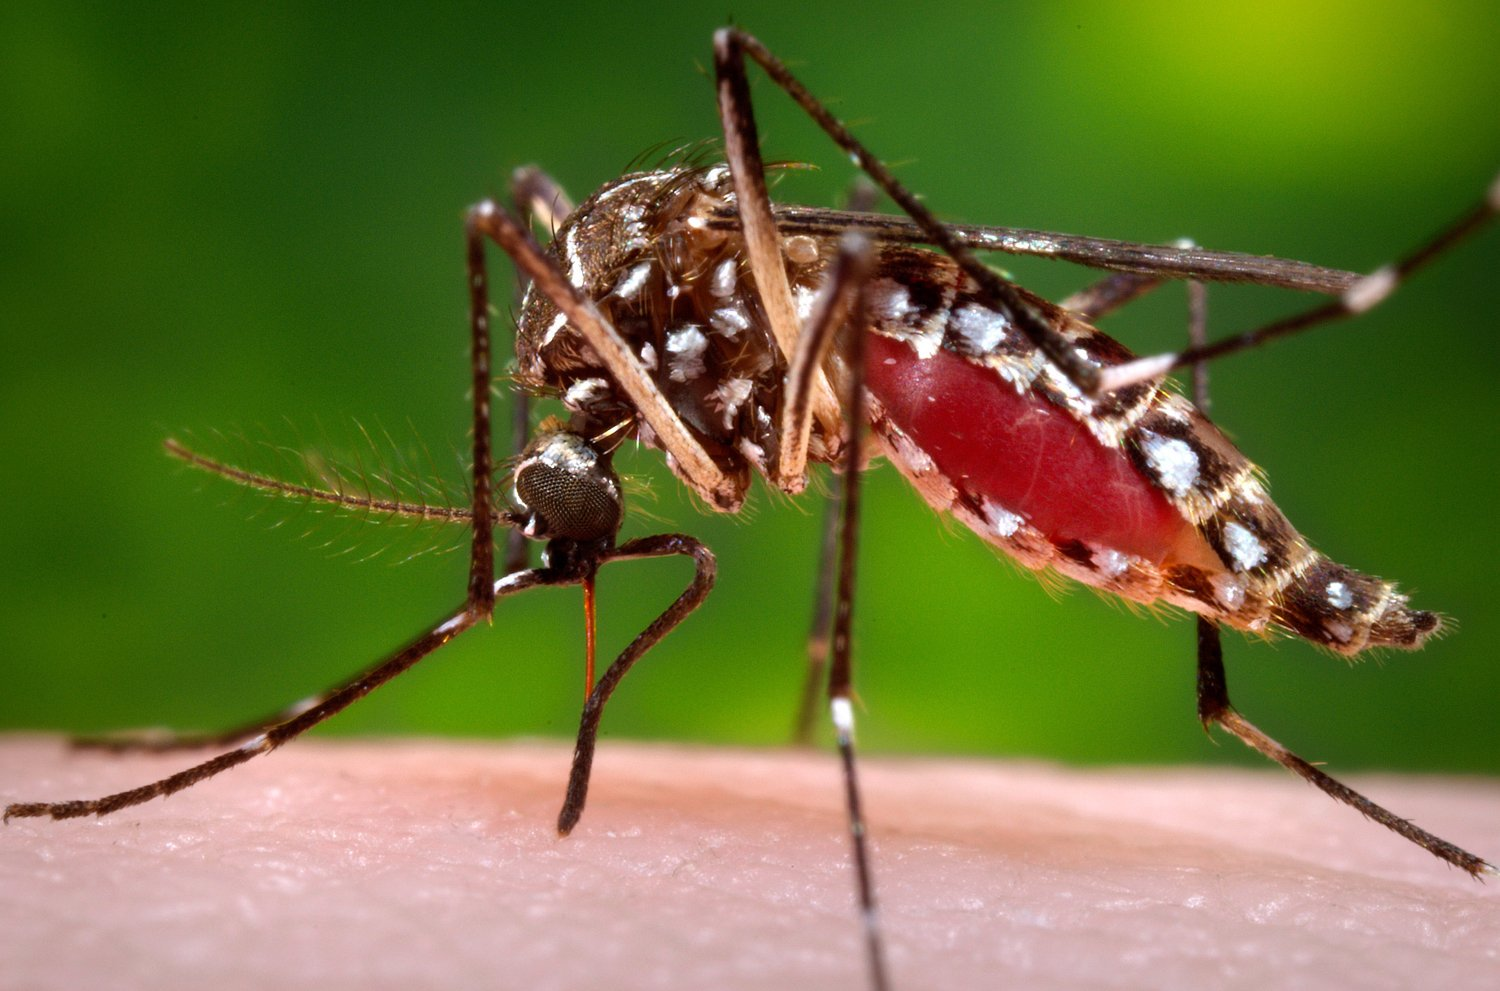 Dengue vaccine could increase dengue's virulence in some settings